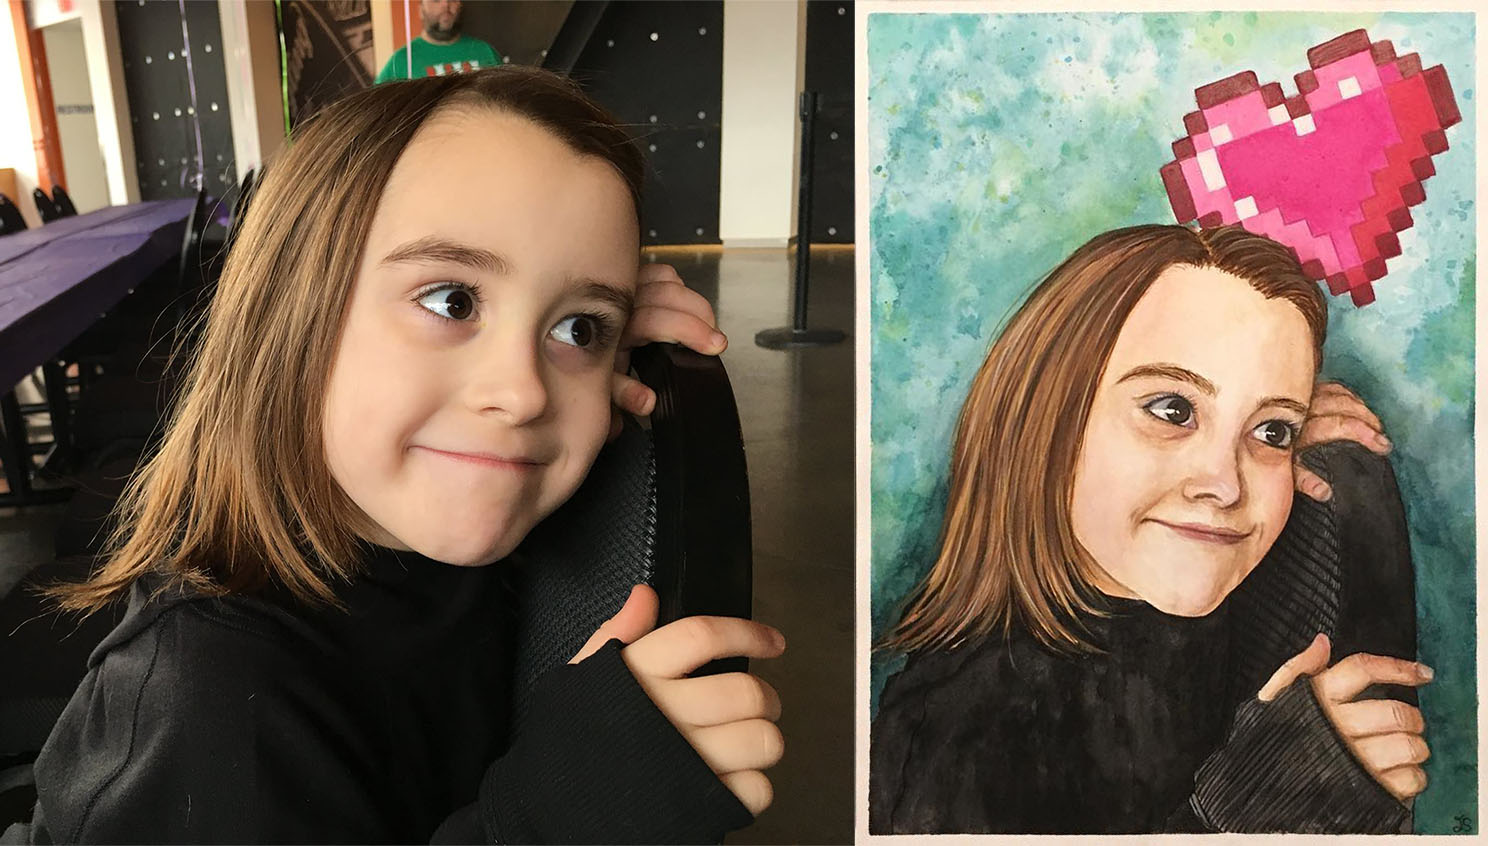 Reference and finished portrait of an 8-year old who loves video games!